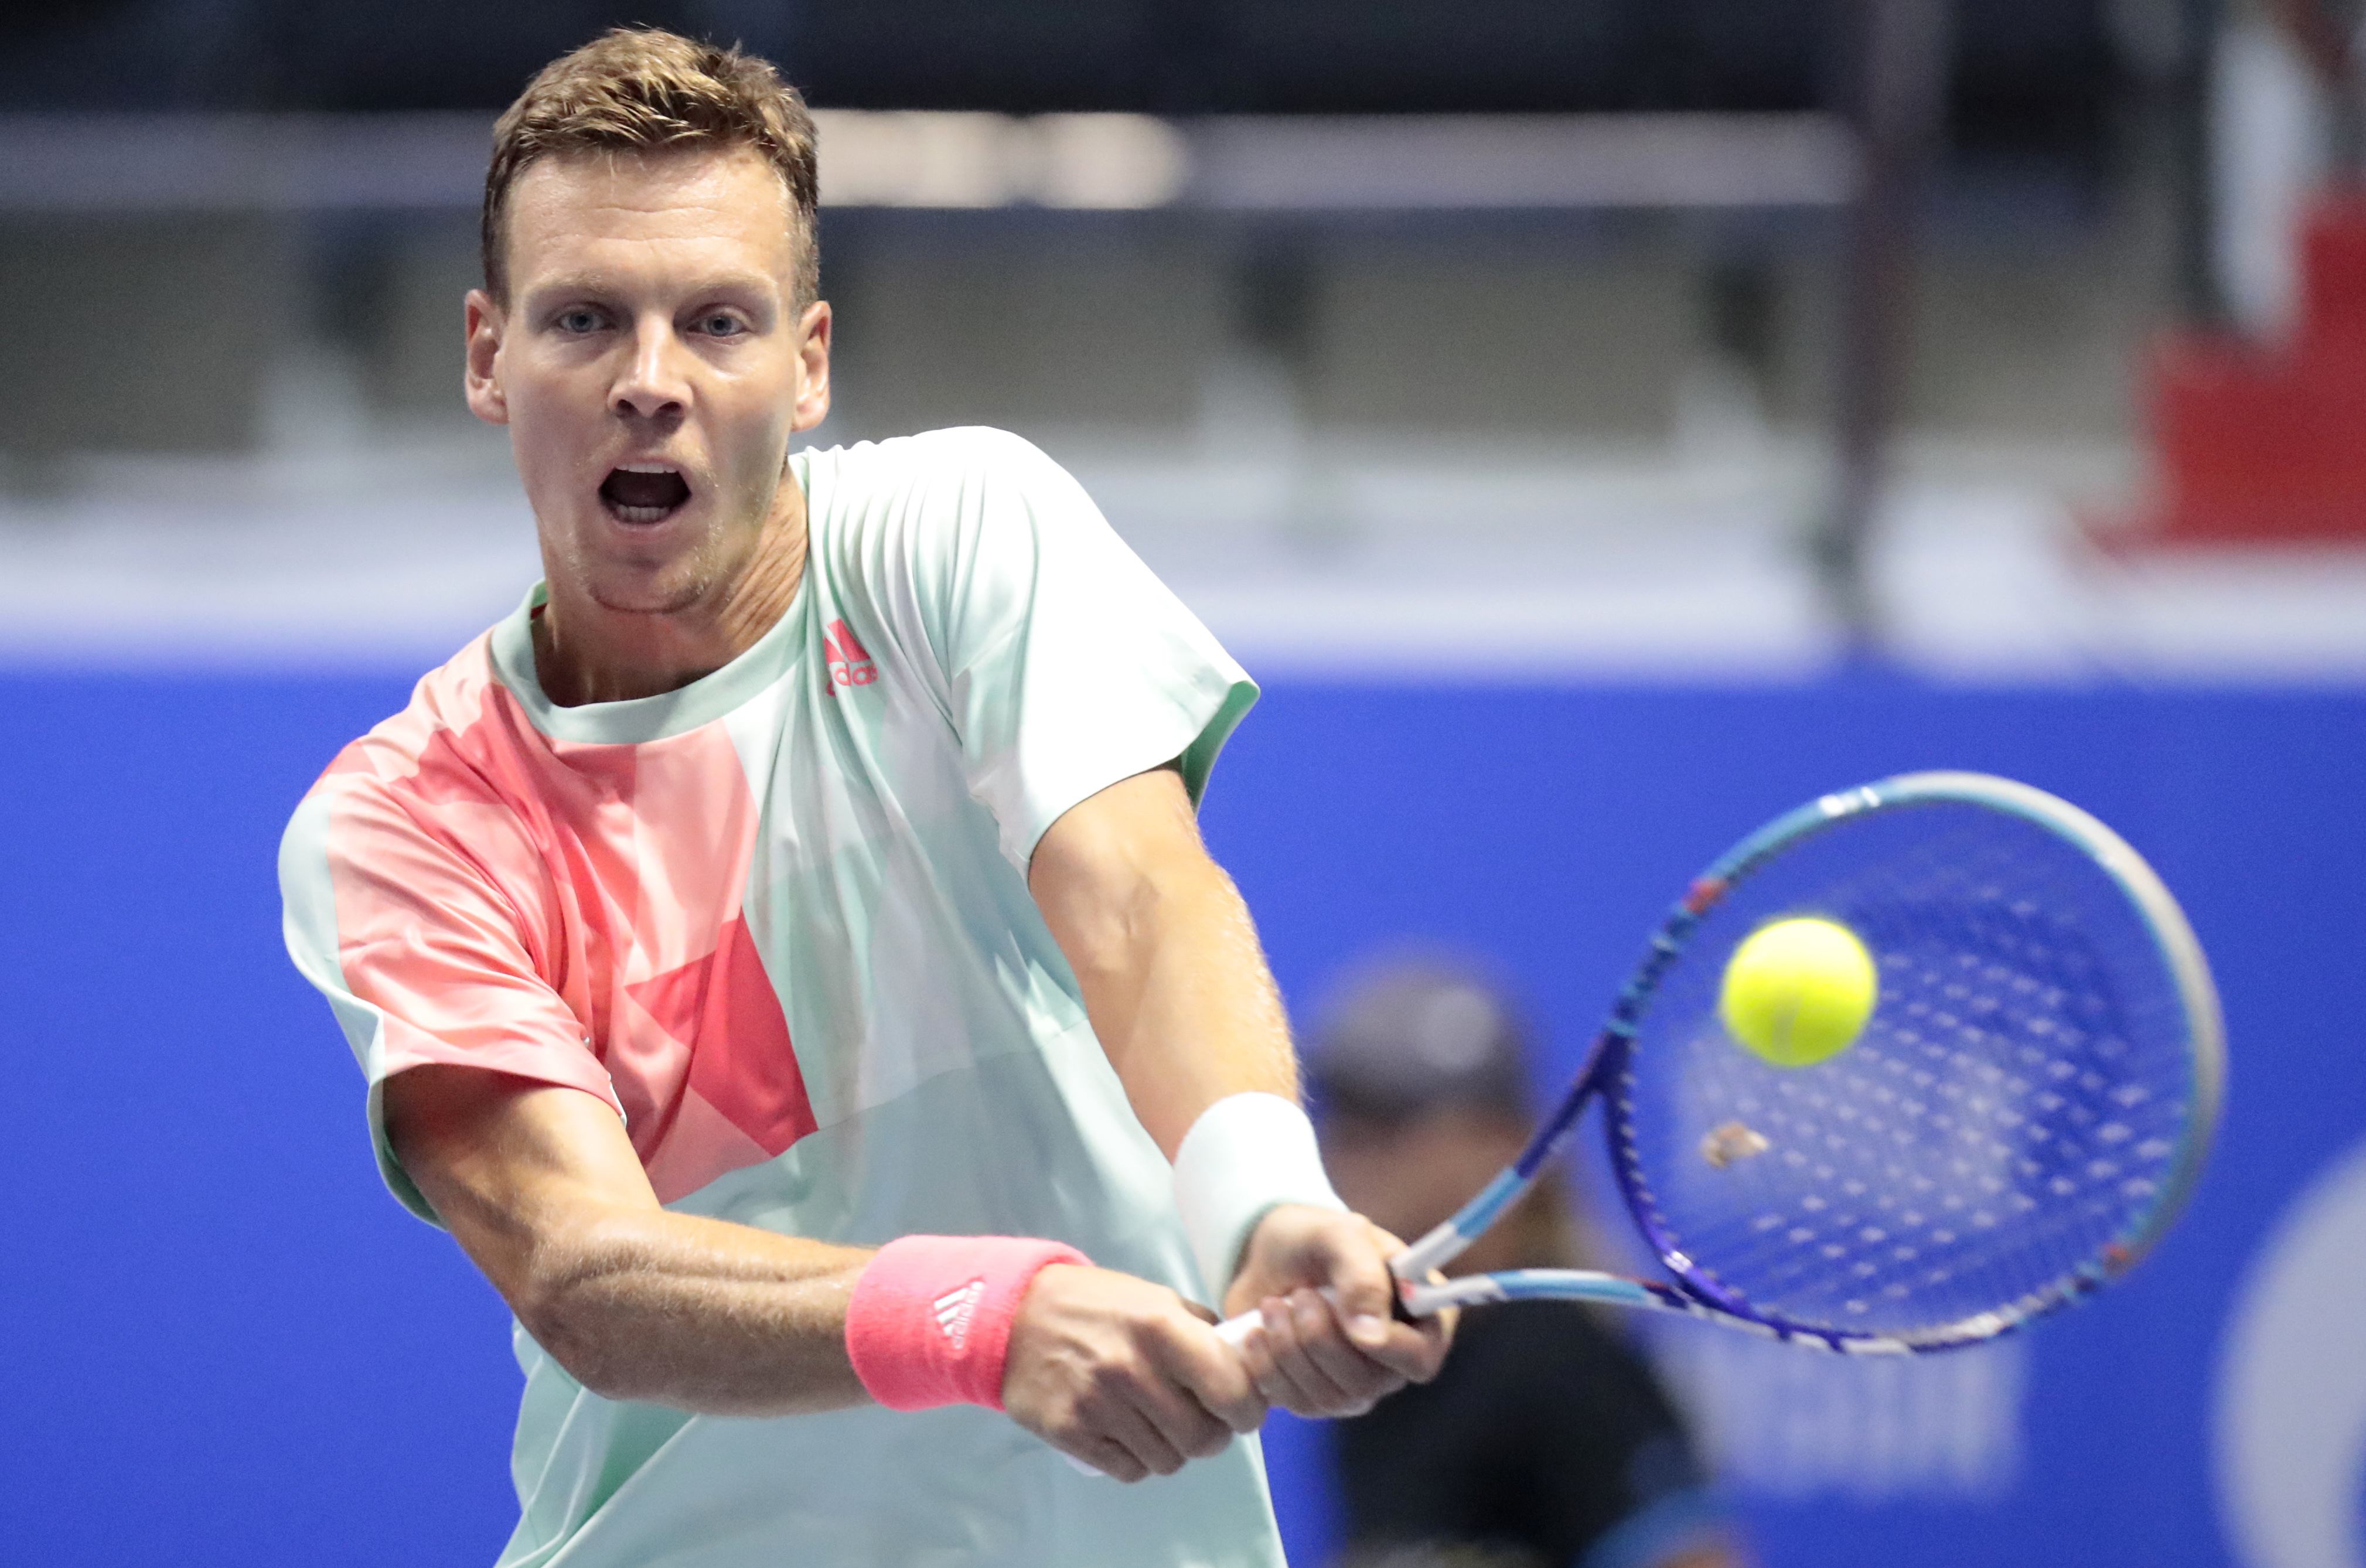 Tomas Berdych of Czech Republic returns the ball to Paolo Lorenzi of Italy during the St. Petersburg Open ATP tennis tournament match in St. Petersburg, Russia, Friday, Sept. 23, 2016. (AP Photo/Dmitri Lovetsky)